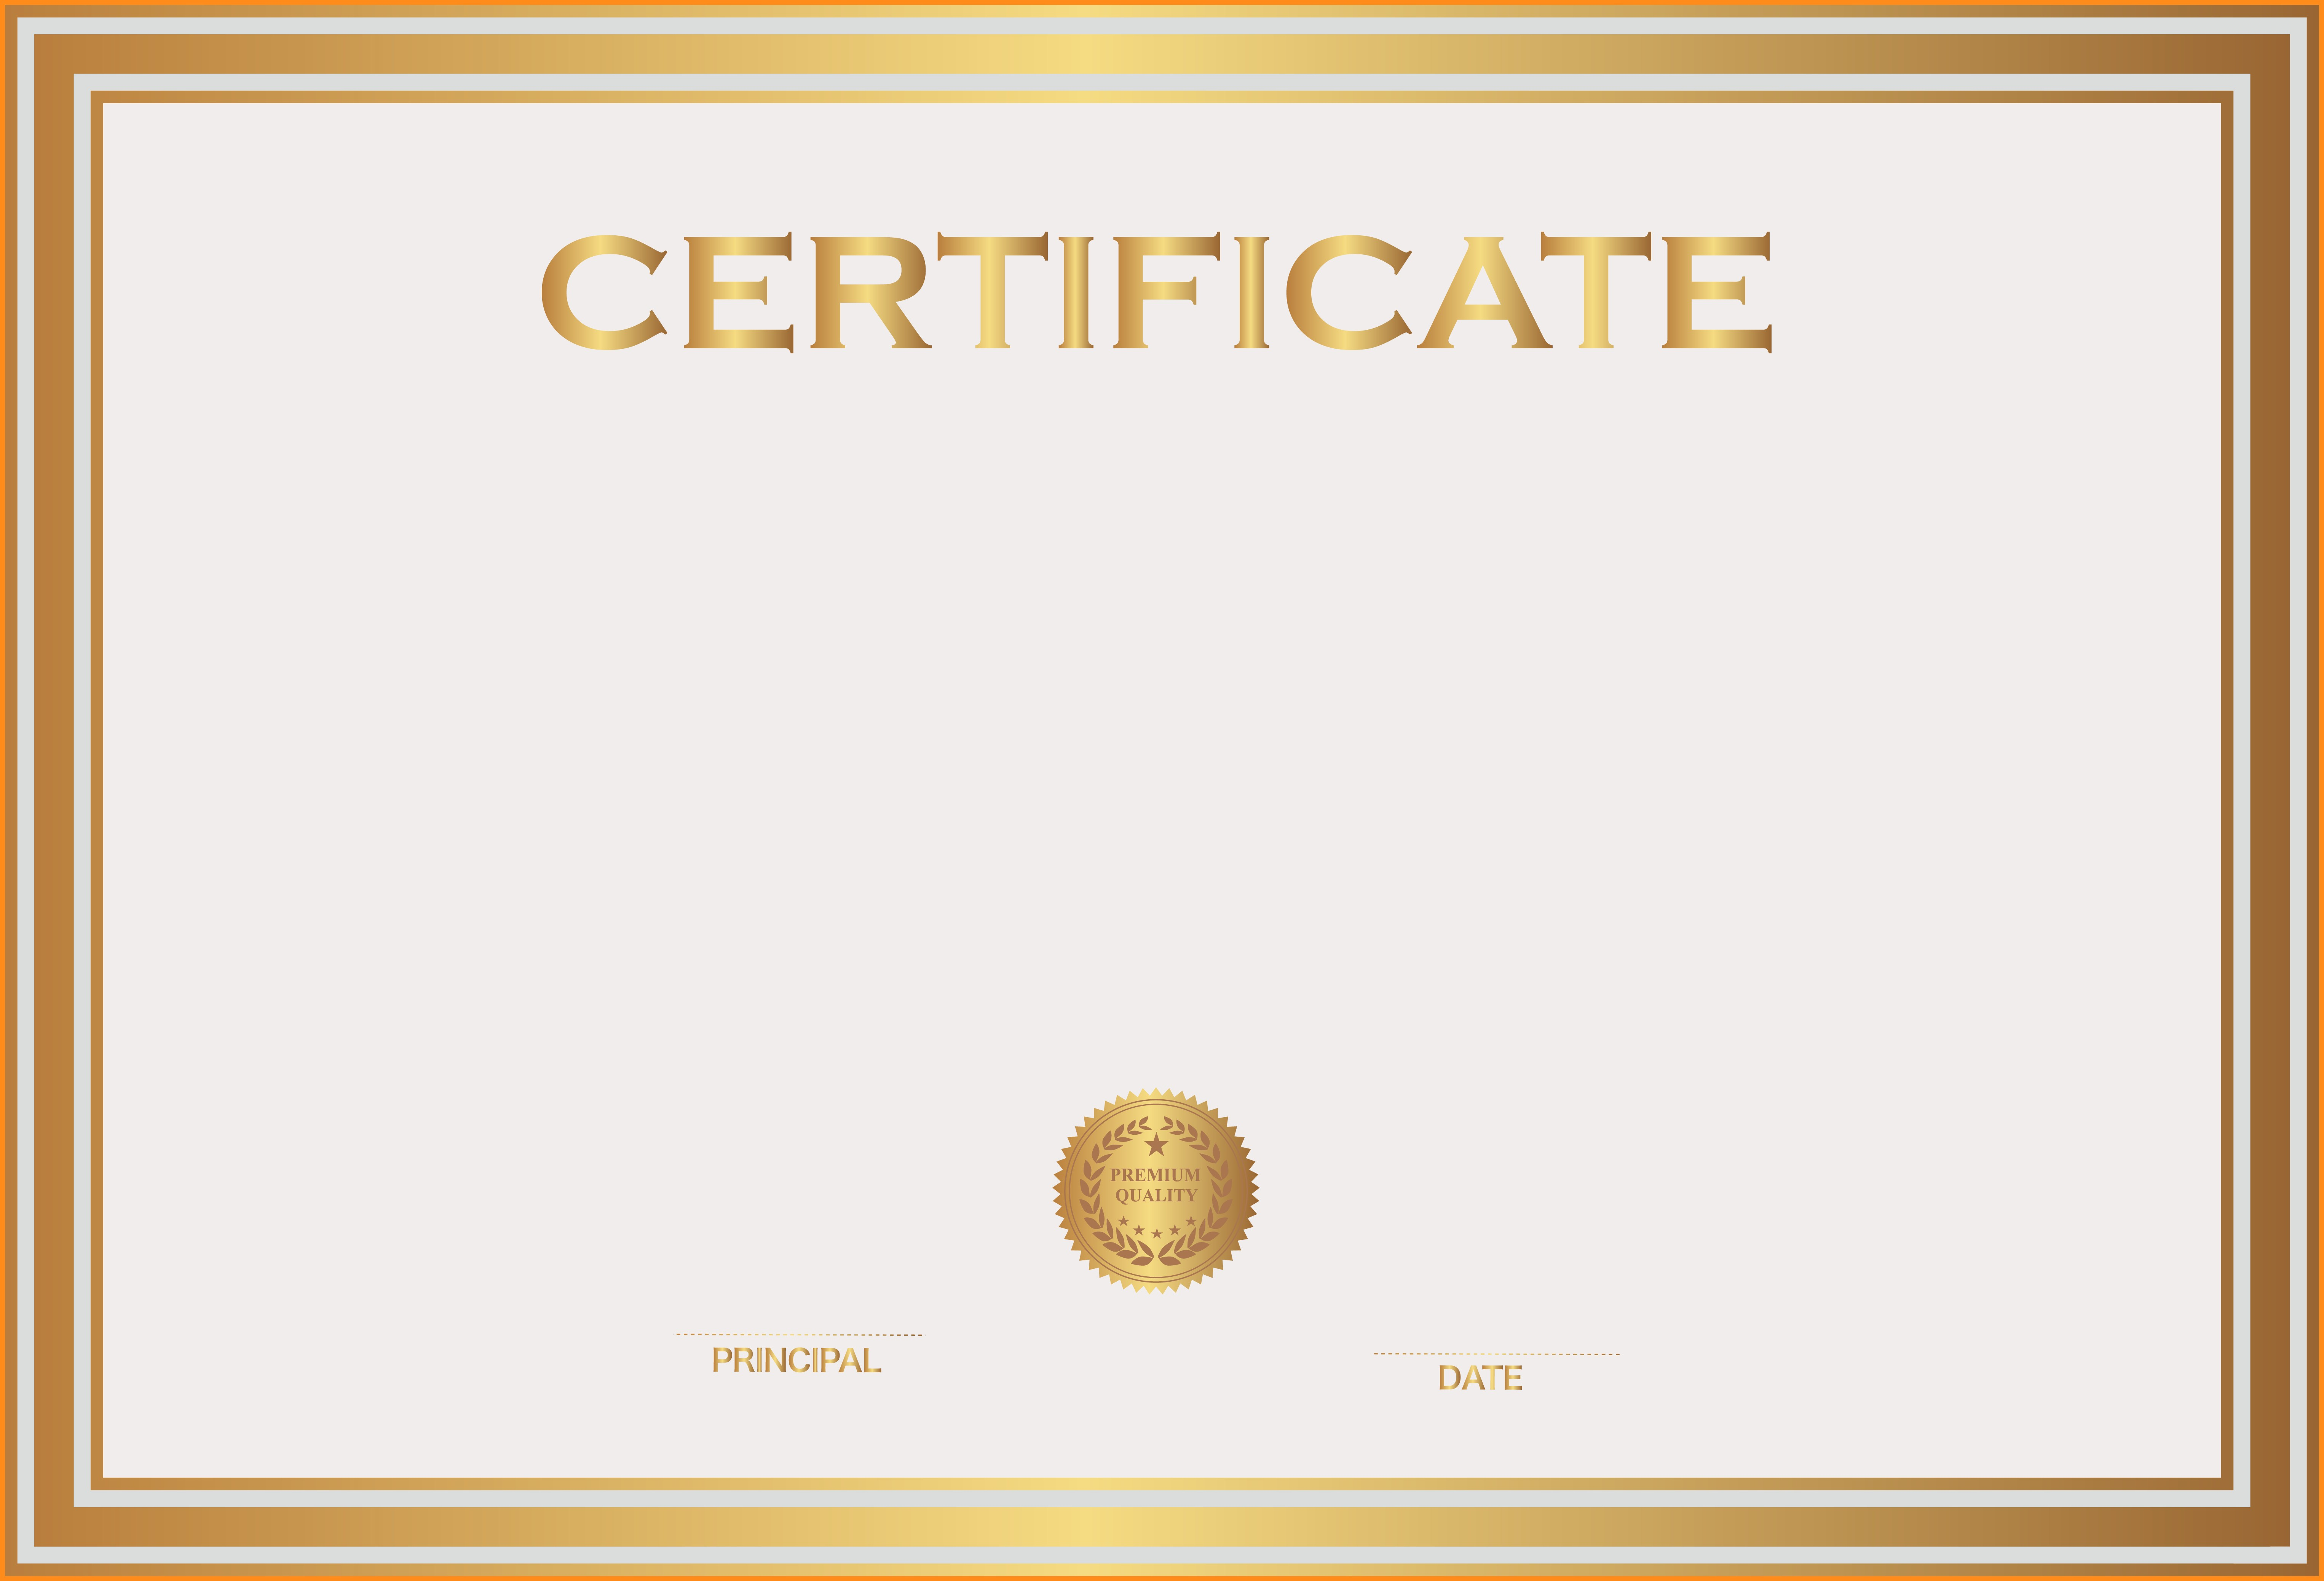 Certificate Background Png 4.